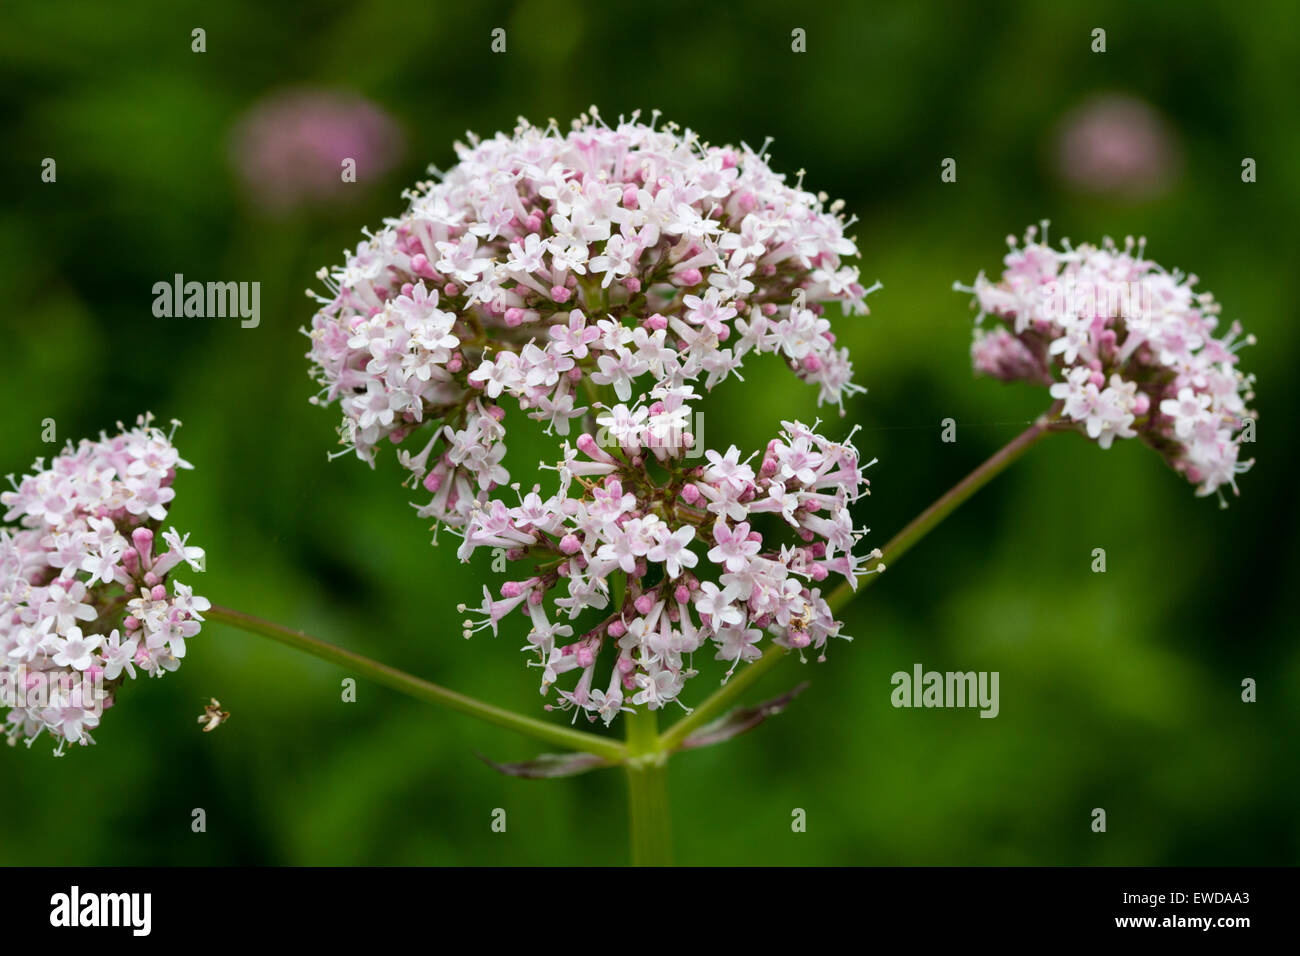 Scented flower heads of the medicinal herb Valerian, Valeriana officinalis - Stock Image